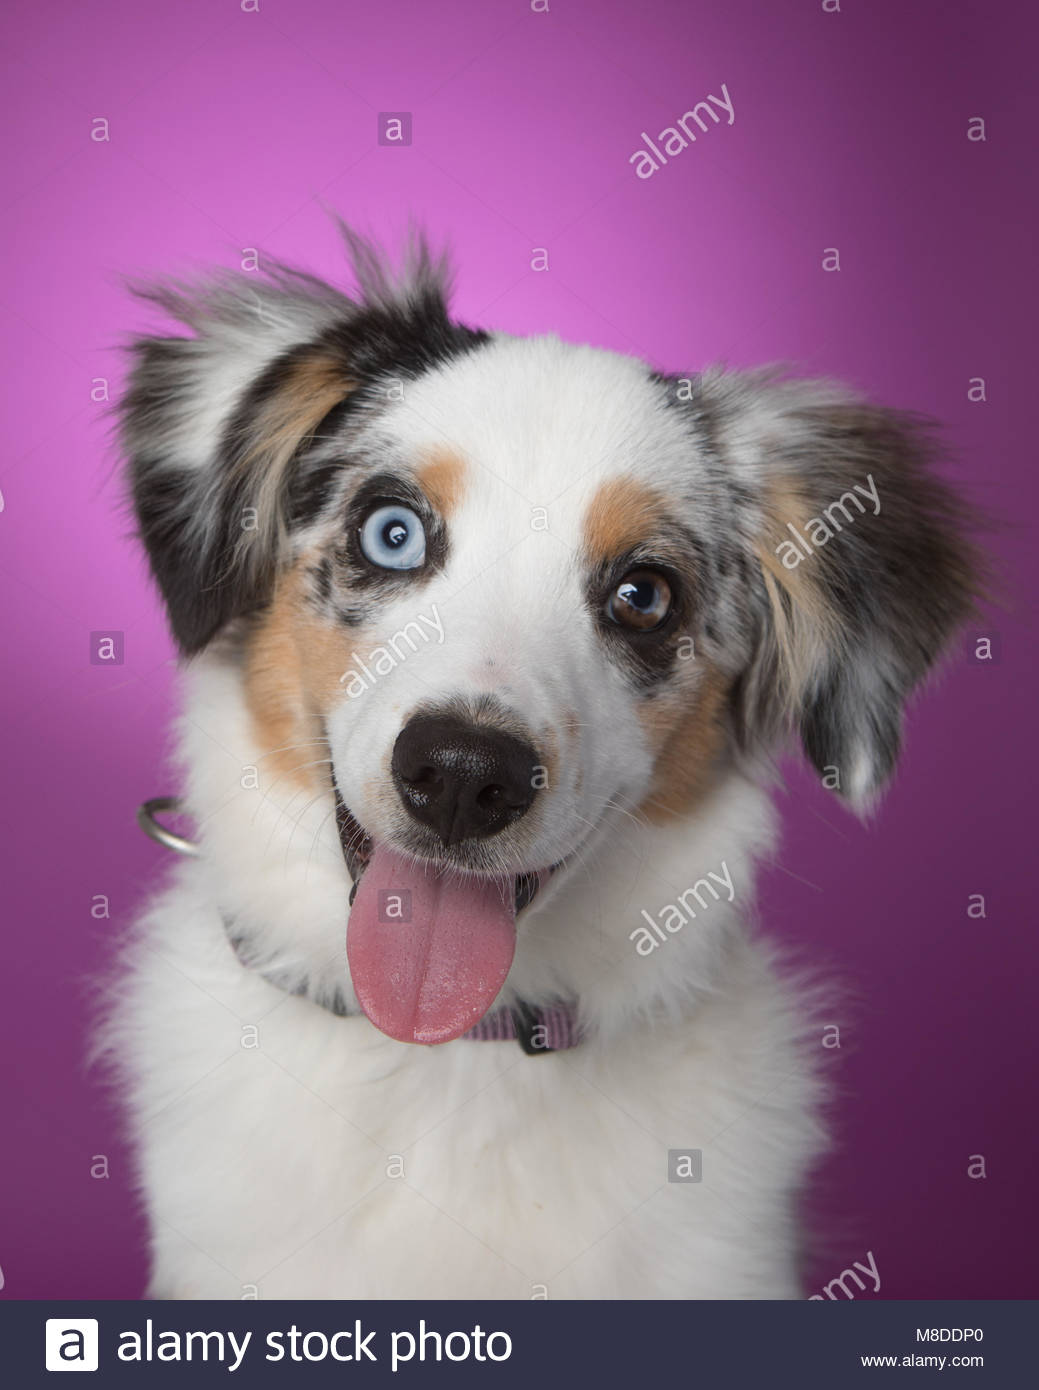 Studio portrait of miniature australian shepherd puppy with head tilted and smiling against a purple background - Stock Image